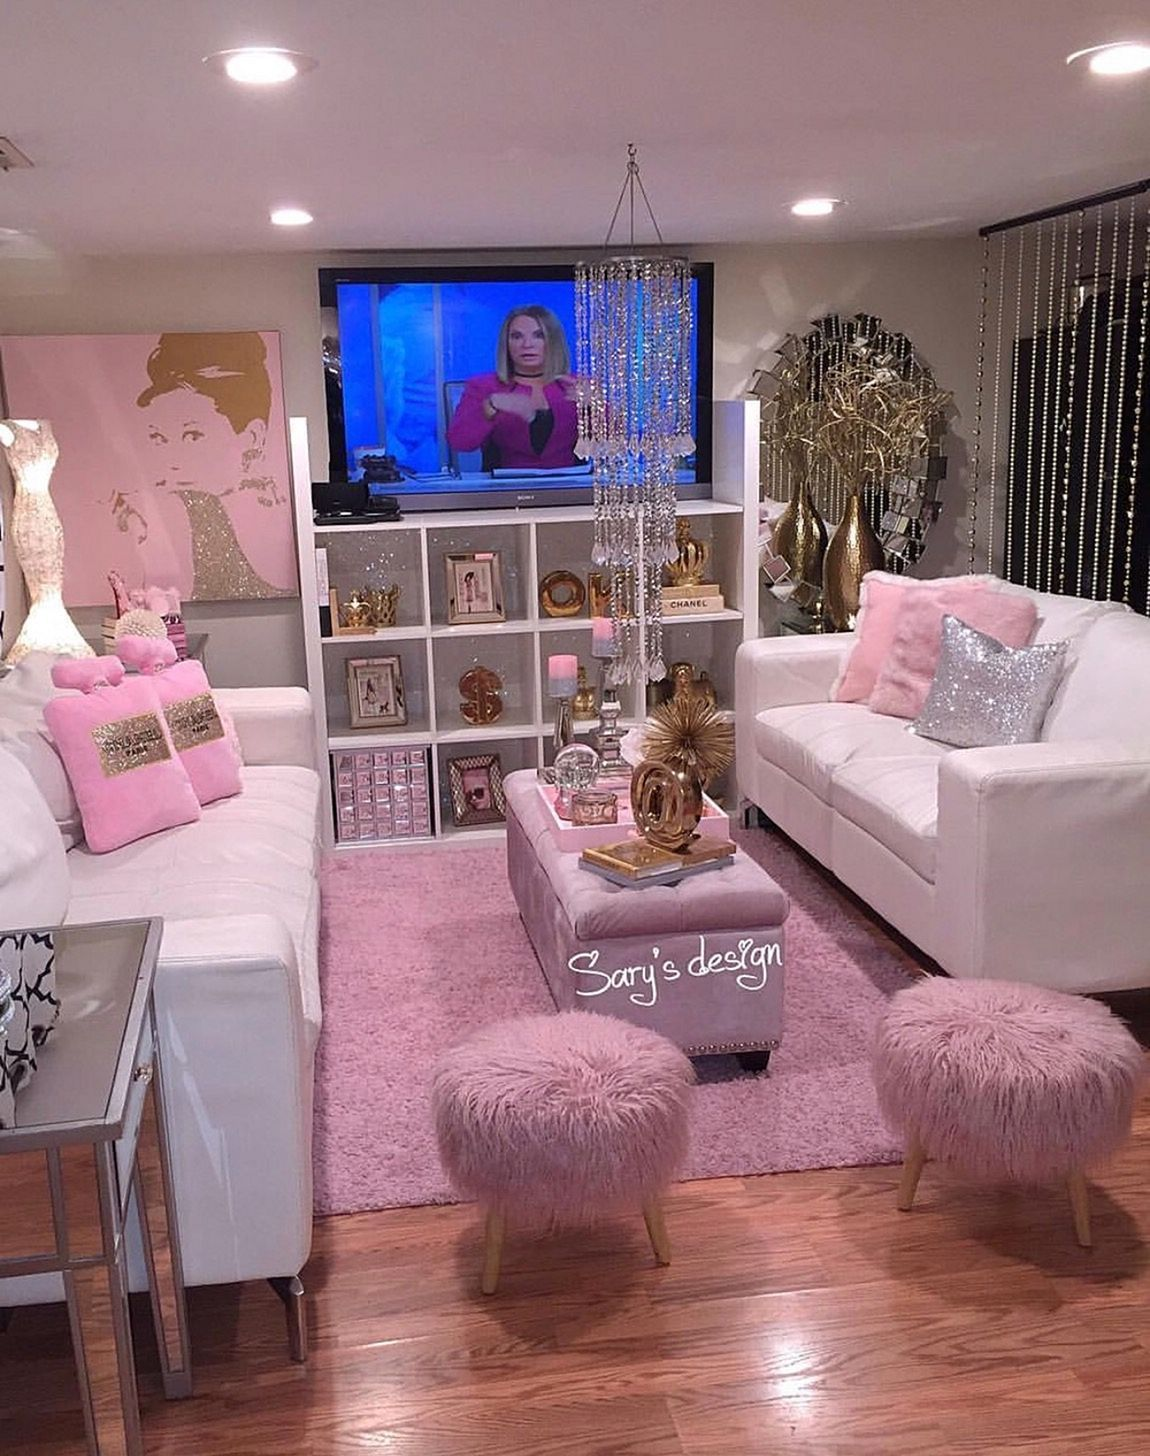 45 Beautiful Glam Room Ideas For Your Home Inspirations Woman